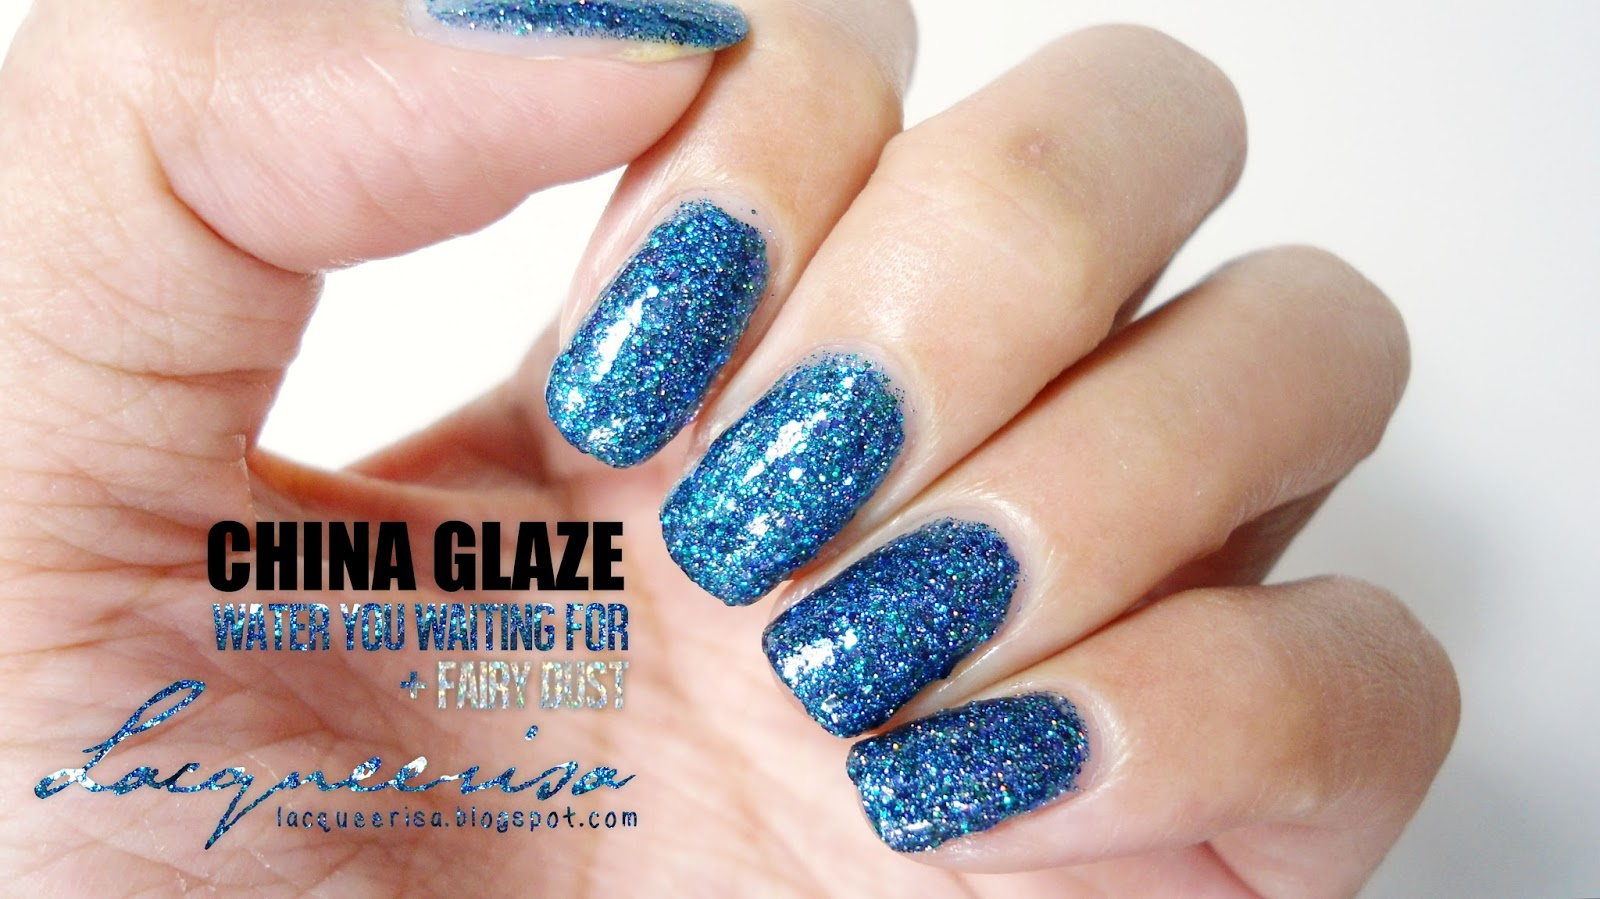 Lacqueerisa: China Glaze Water You Waiting For & China Glaze Fairy Dust